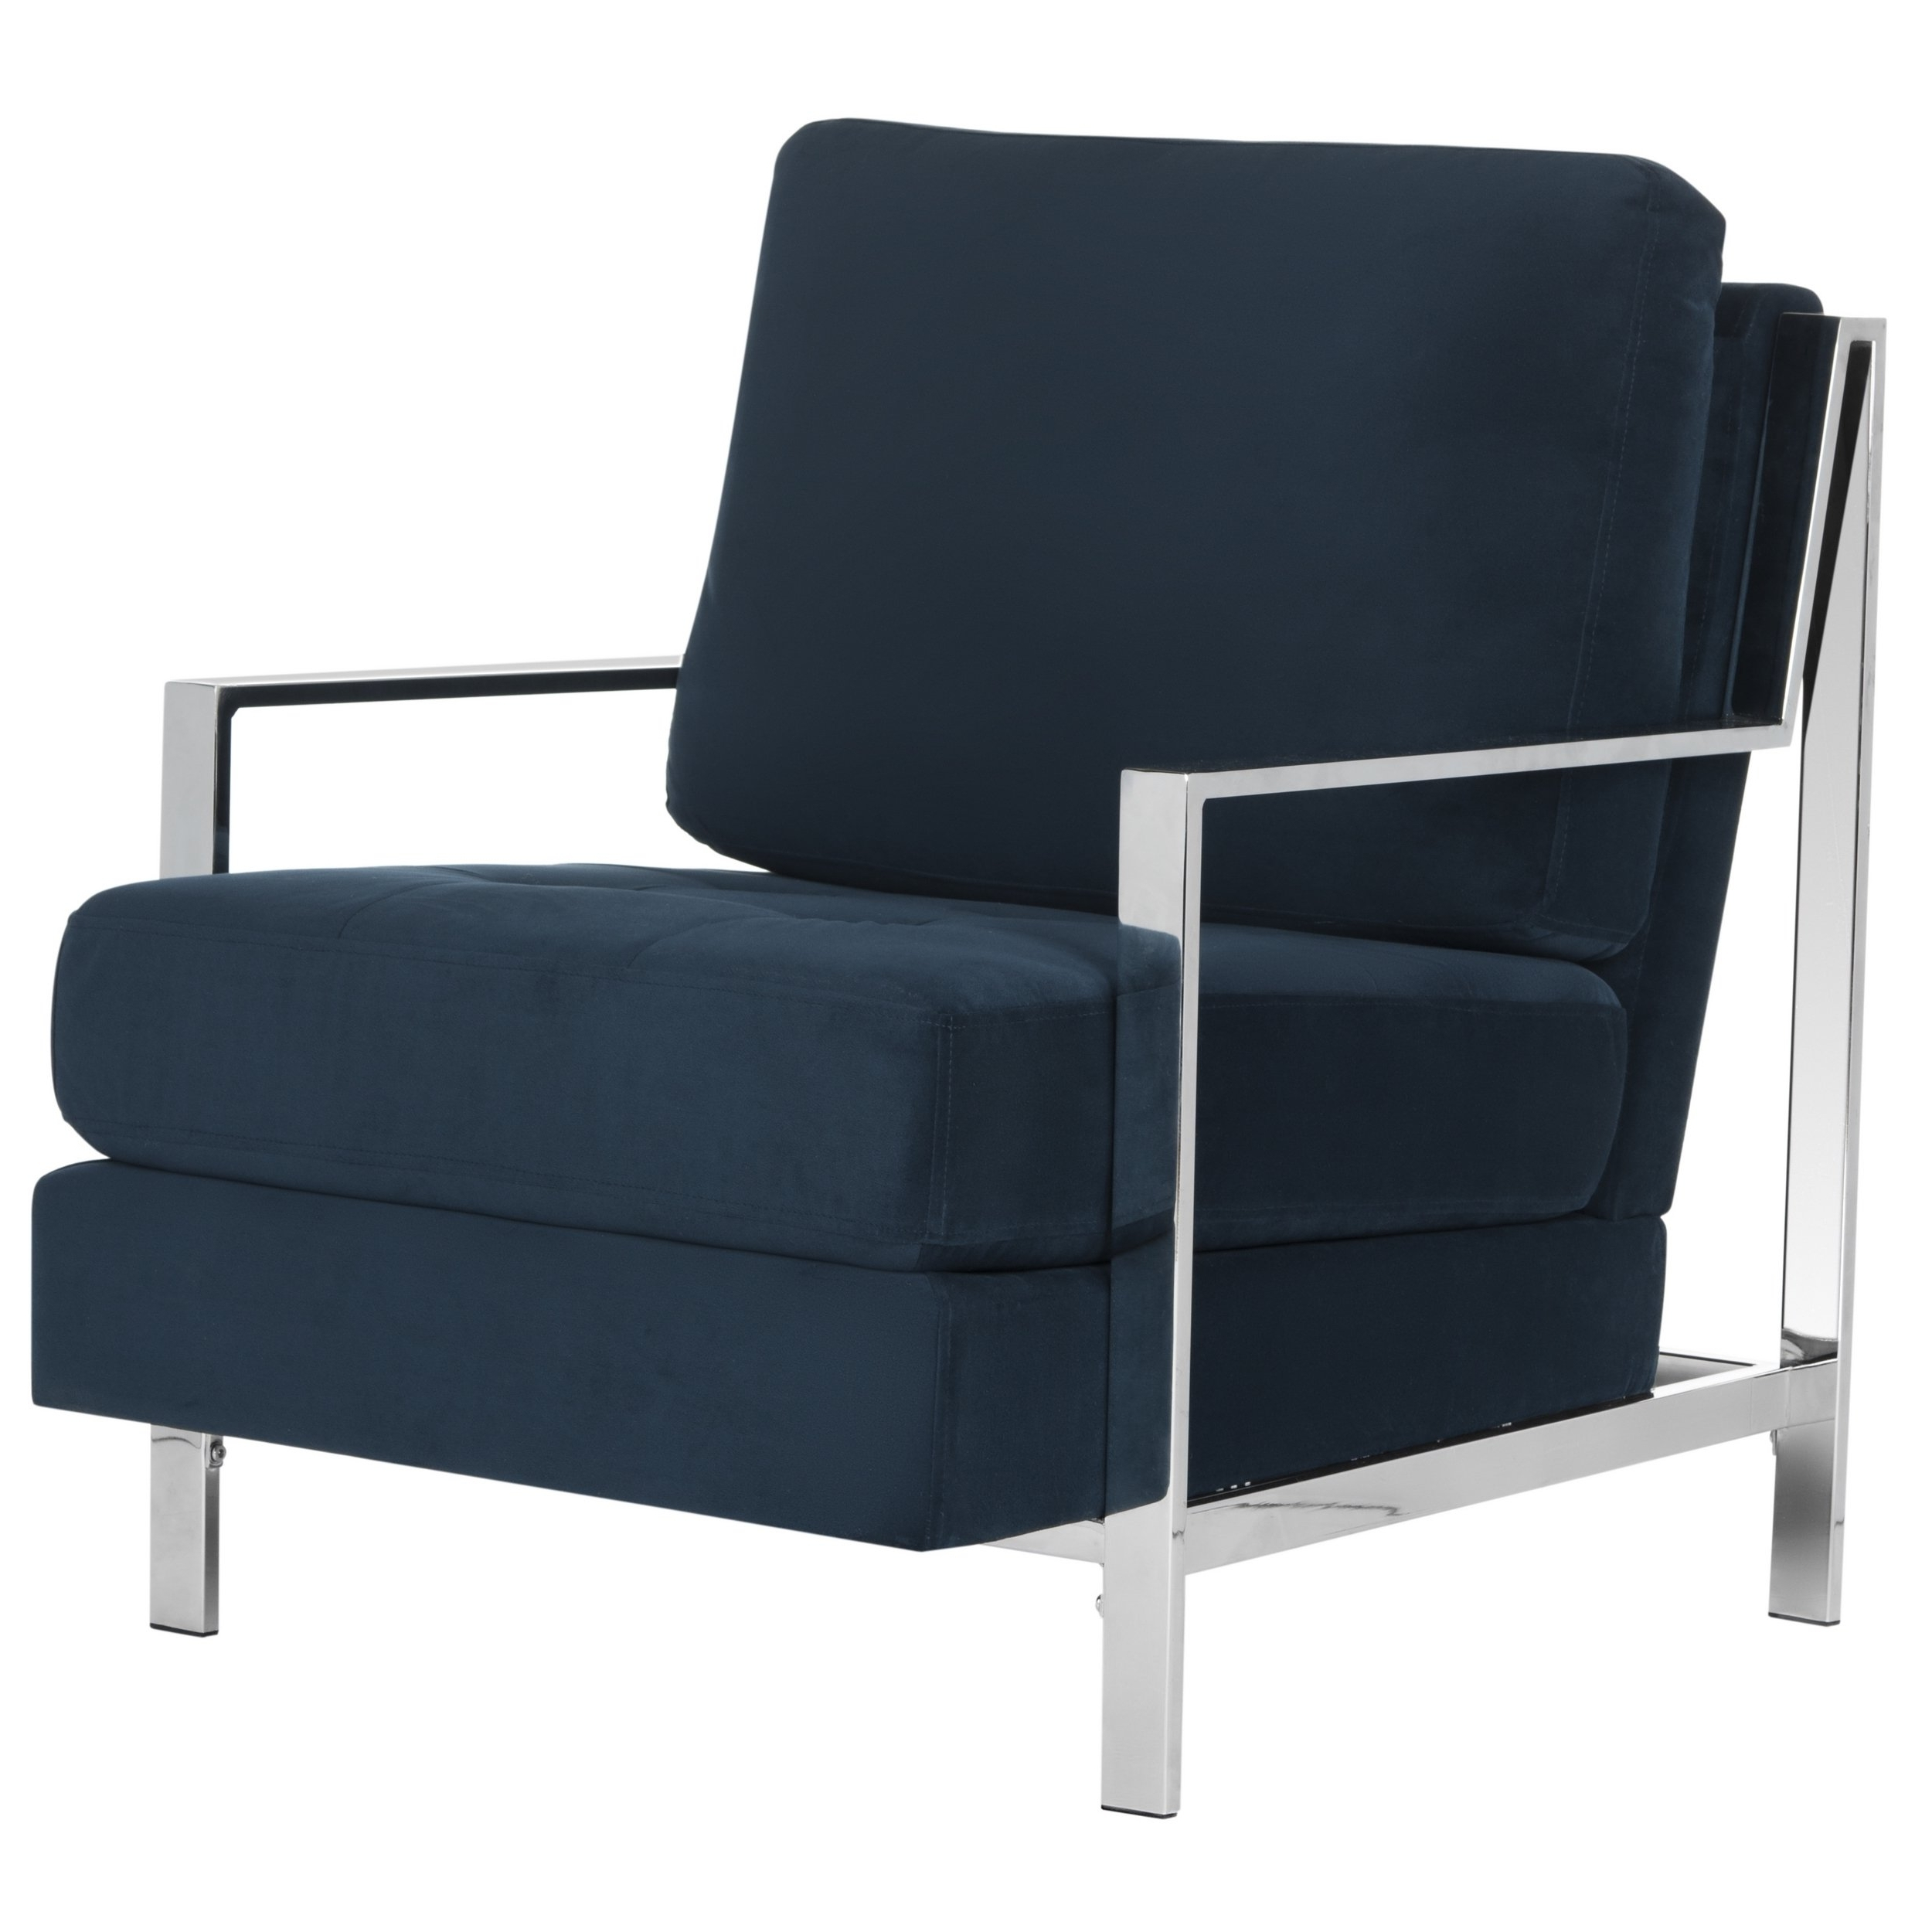 Walden Upholstered Arm Chairs Intended For Current Shop Mid Century Modern Glam Velvet Navy Blue Club Chair – Free (View 12 of 20)